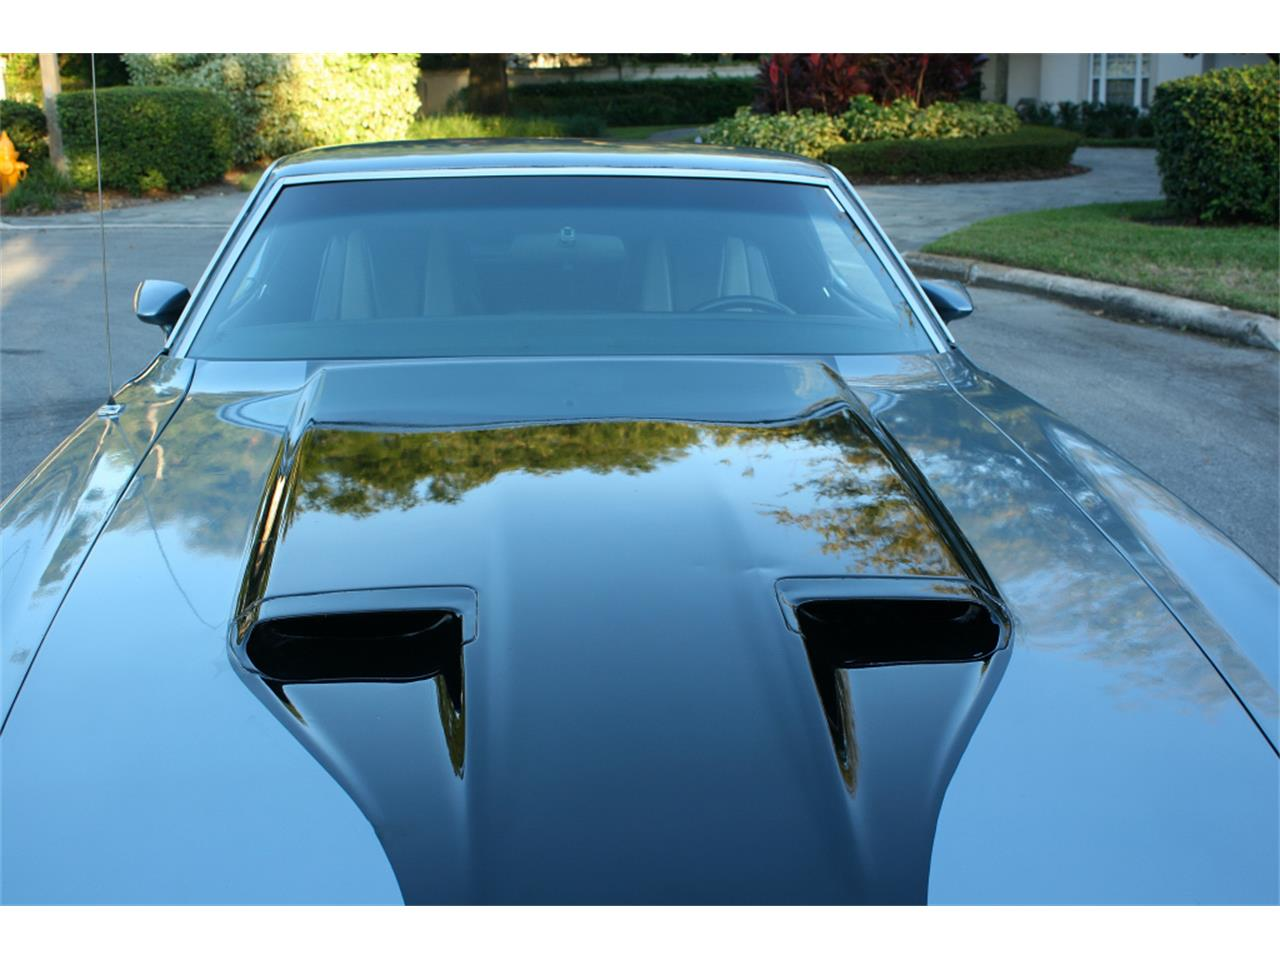 Large Picture of '73 Ford Mustang located in Florida - $17,500.00 Offered by MJC Classic Cars - MA11